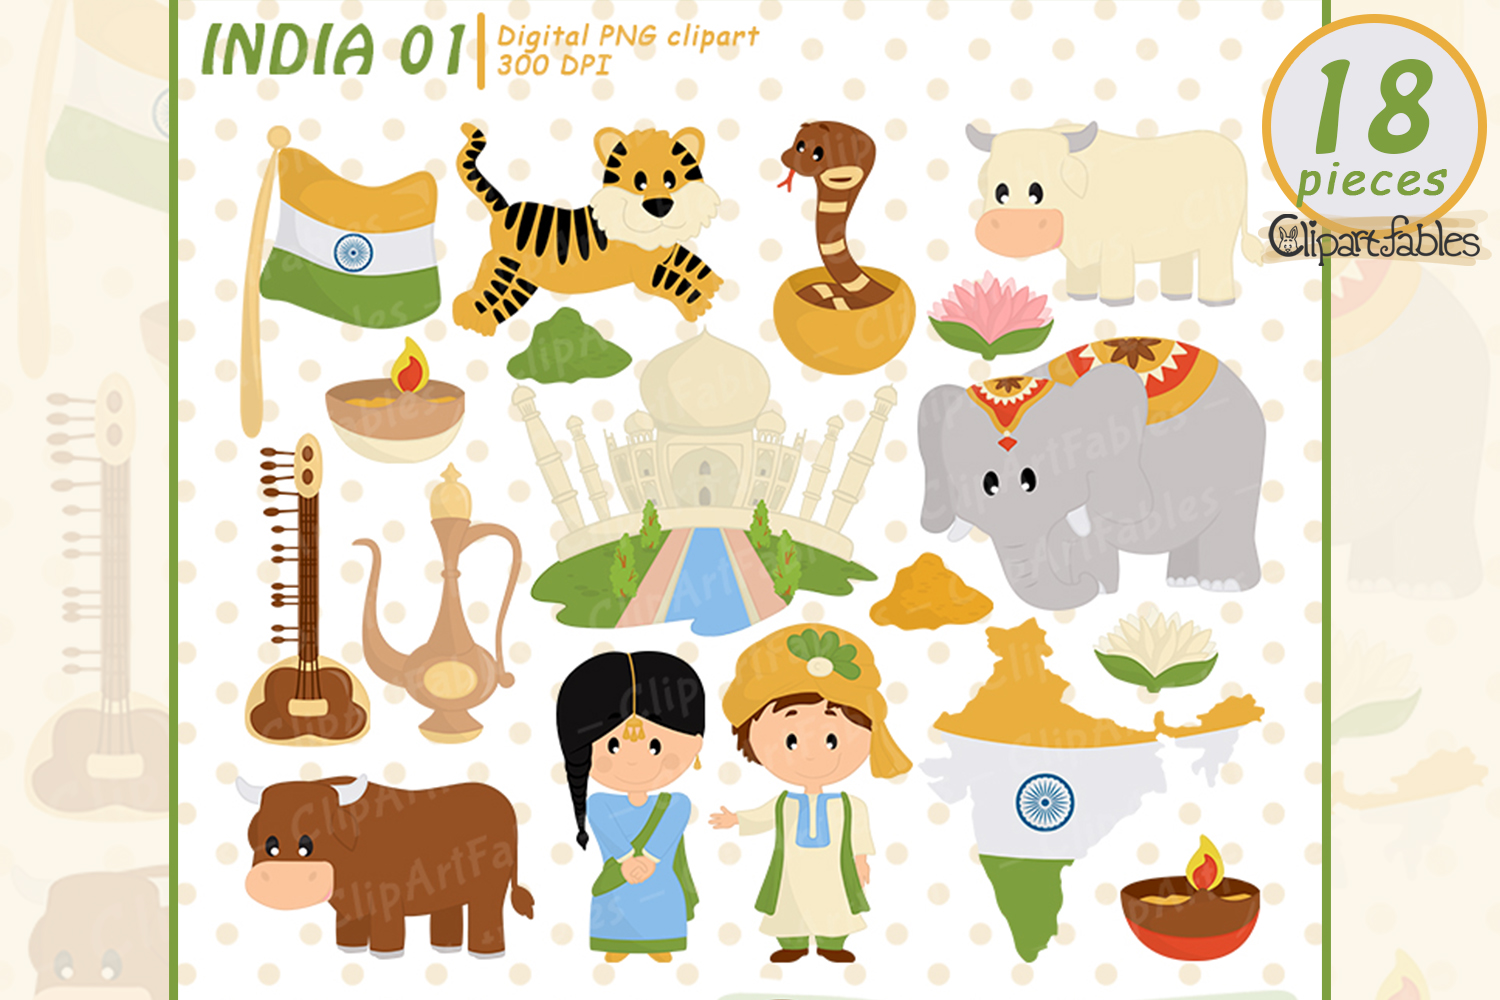 Cute India clipart, Taj Mahal design, Travel clip art.